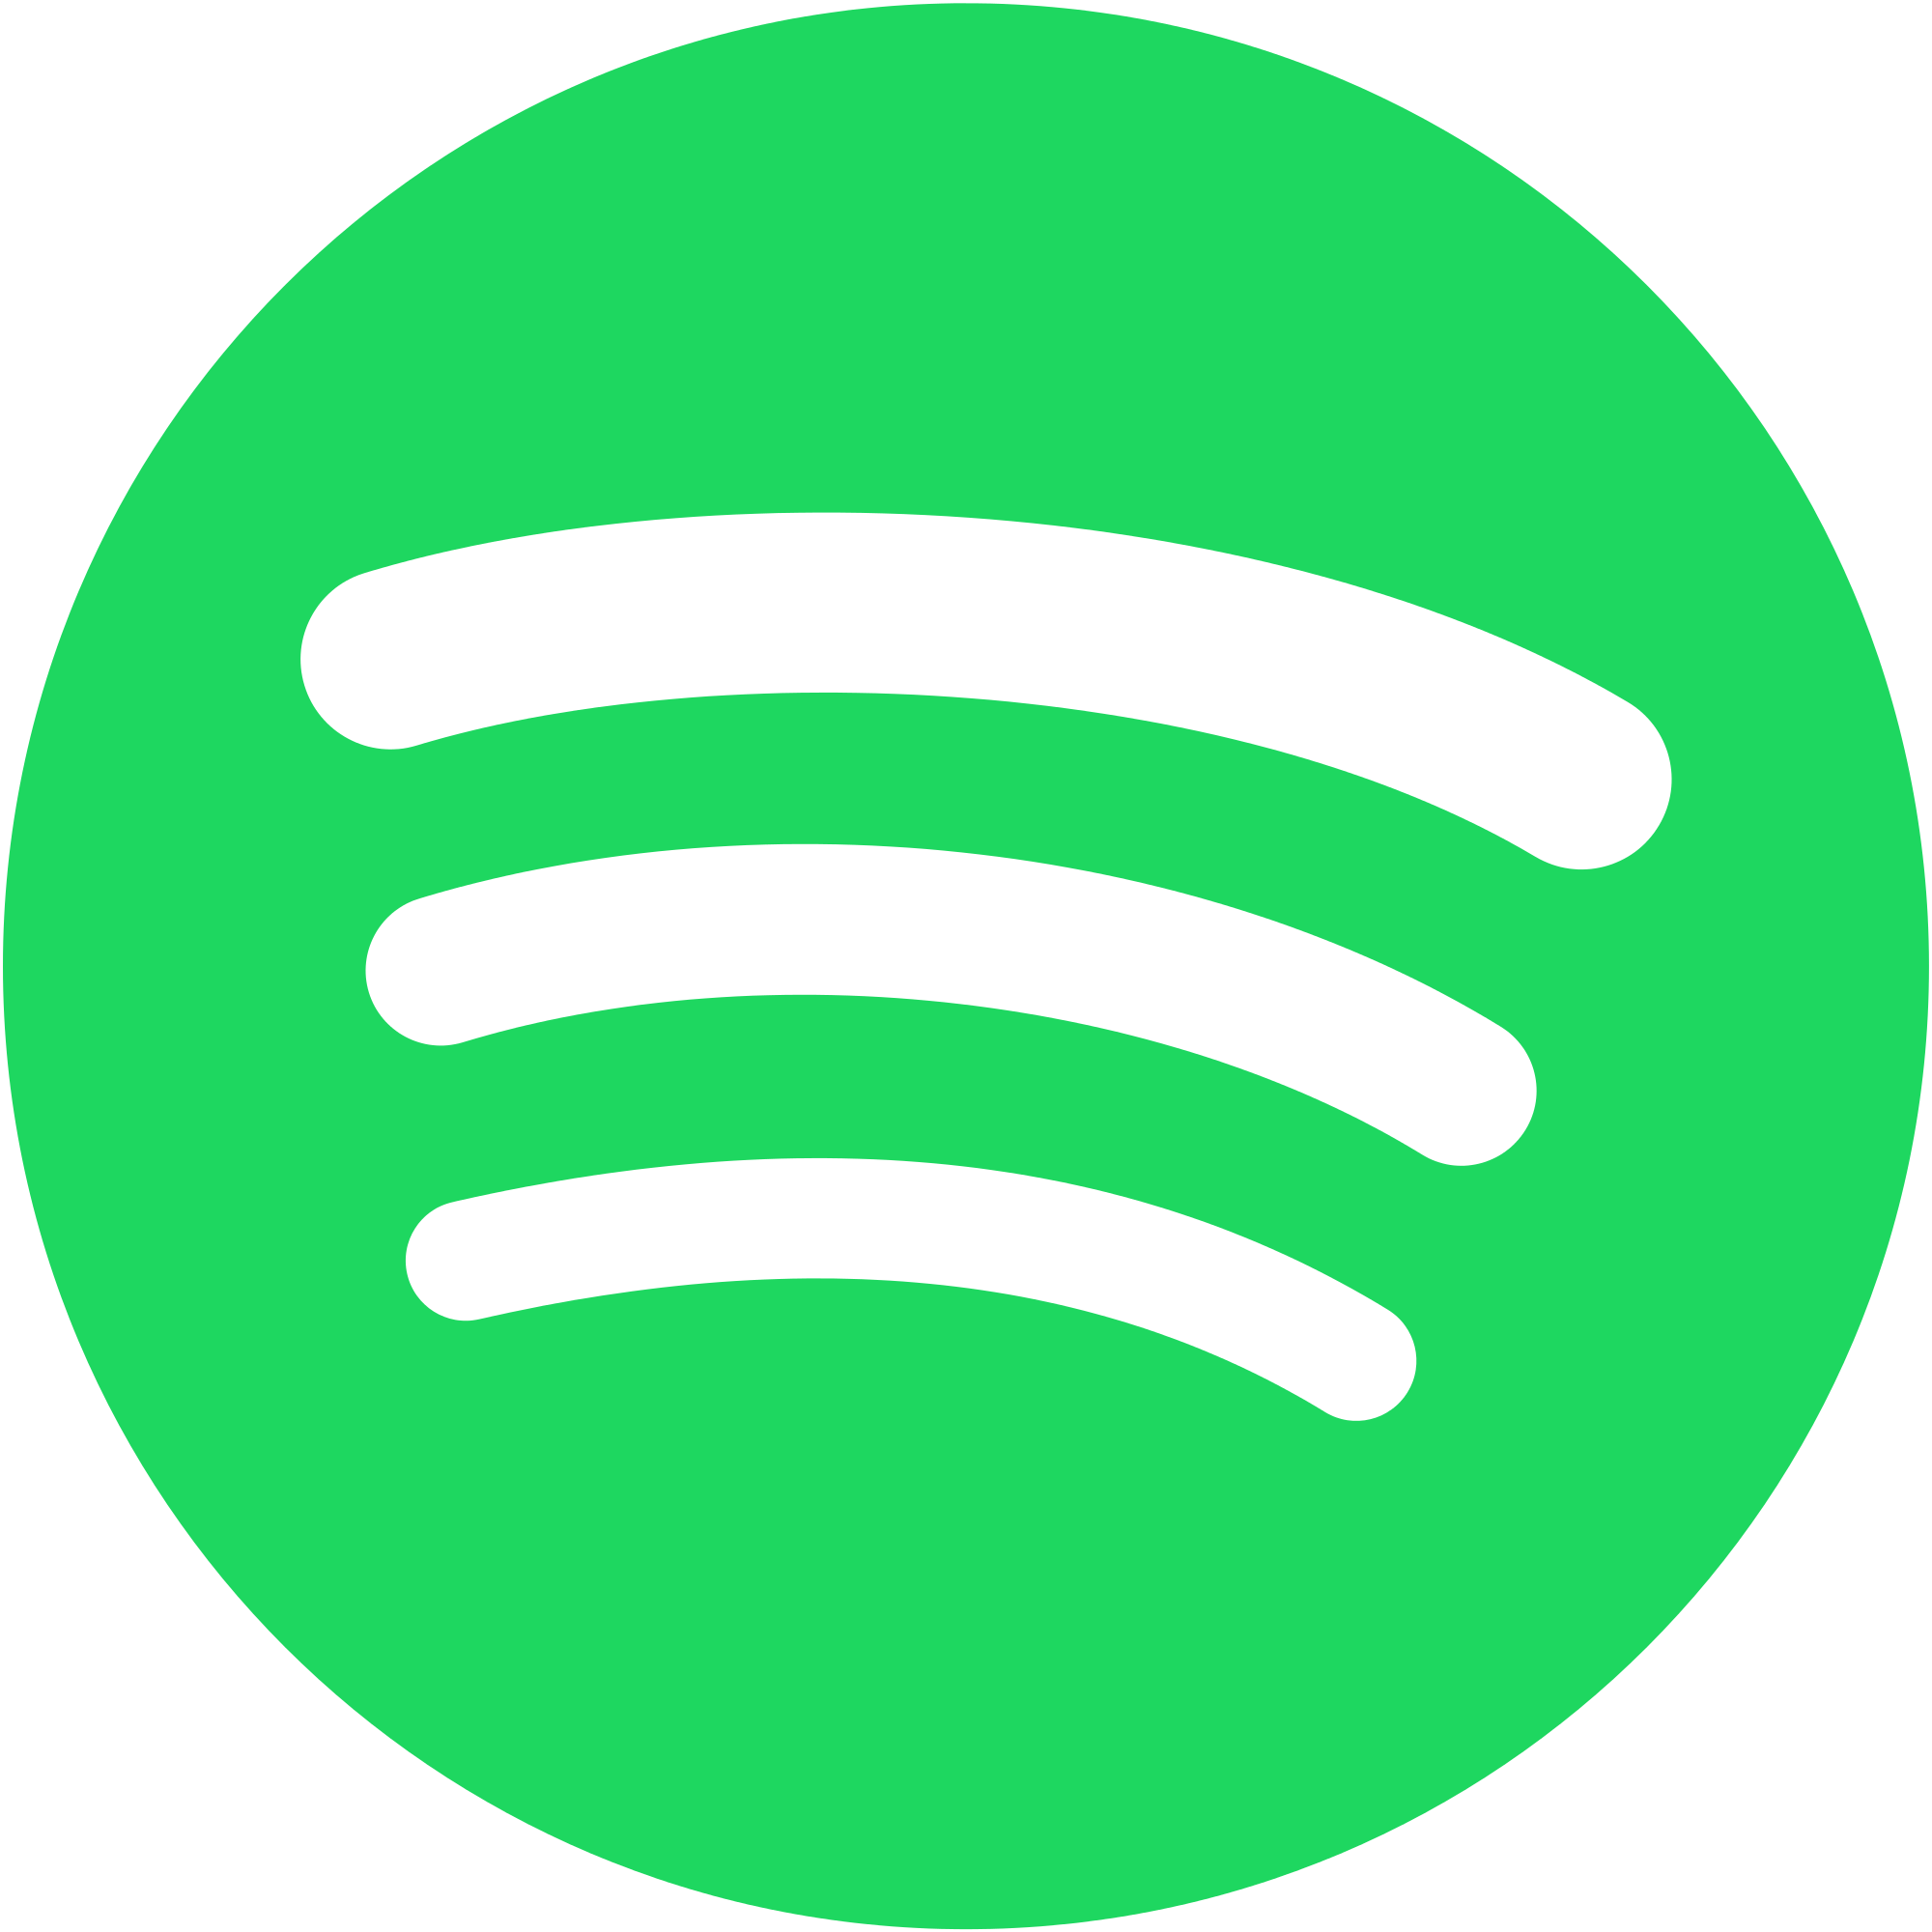 Spotify_Logo.png Moonlyn, Moonlyn Music, Moonlyn's official website, Moonlyn website, Happiness, La la la la, Song, Angels Sing Peace, Angellic song, angellic singer, peace song, song about peace, happy song, music with positive message